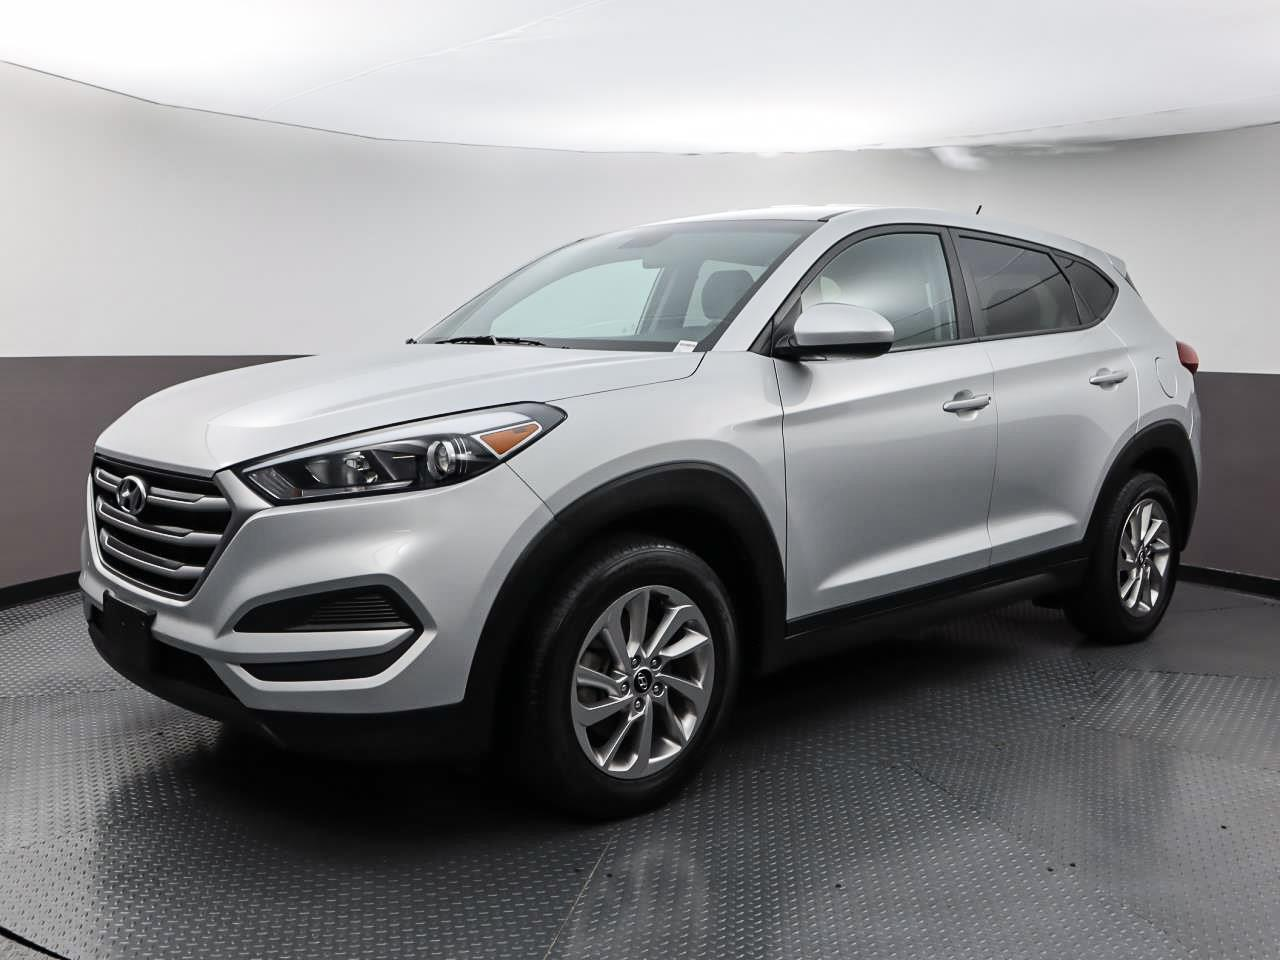 Used HYUNDAI TUCSON 2018 WEST PALM SE